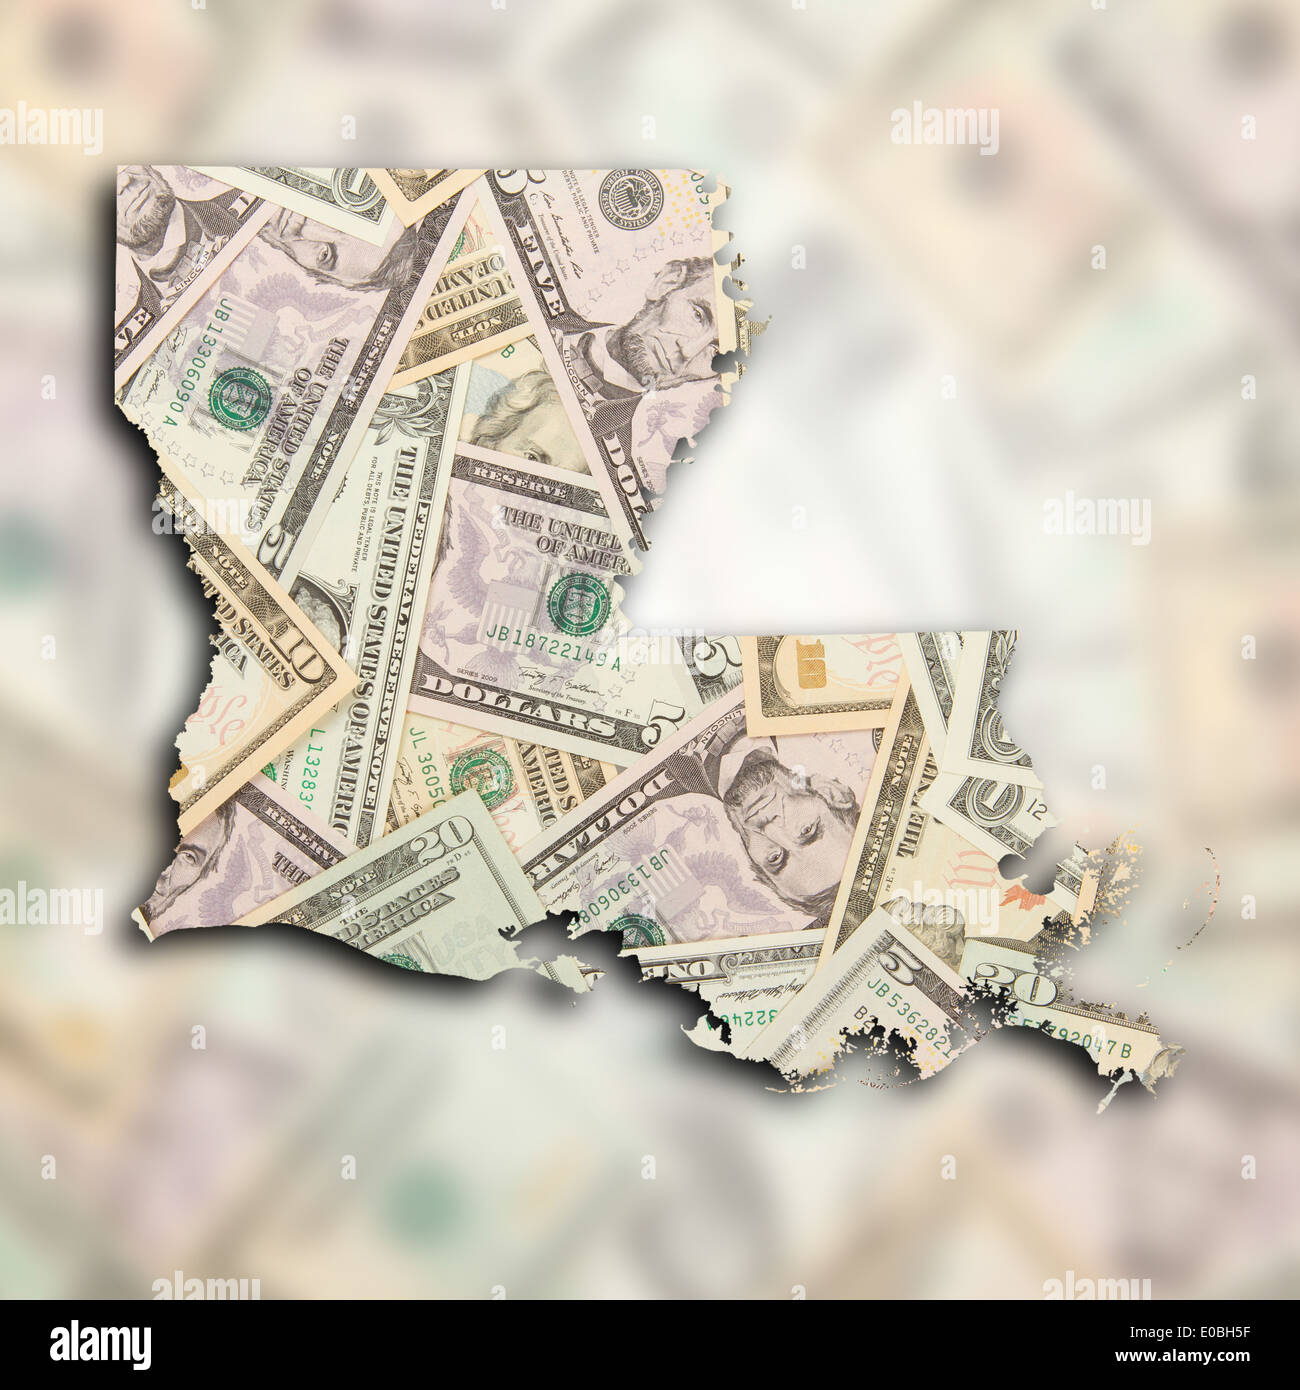 Map of Louisiana filled with US dollars Stock Photo: 69096427 - Alamy